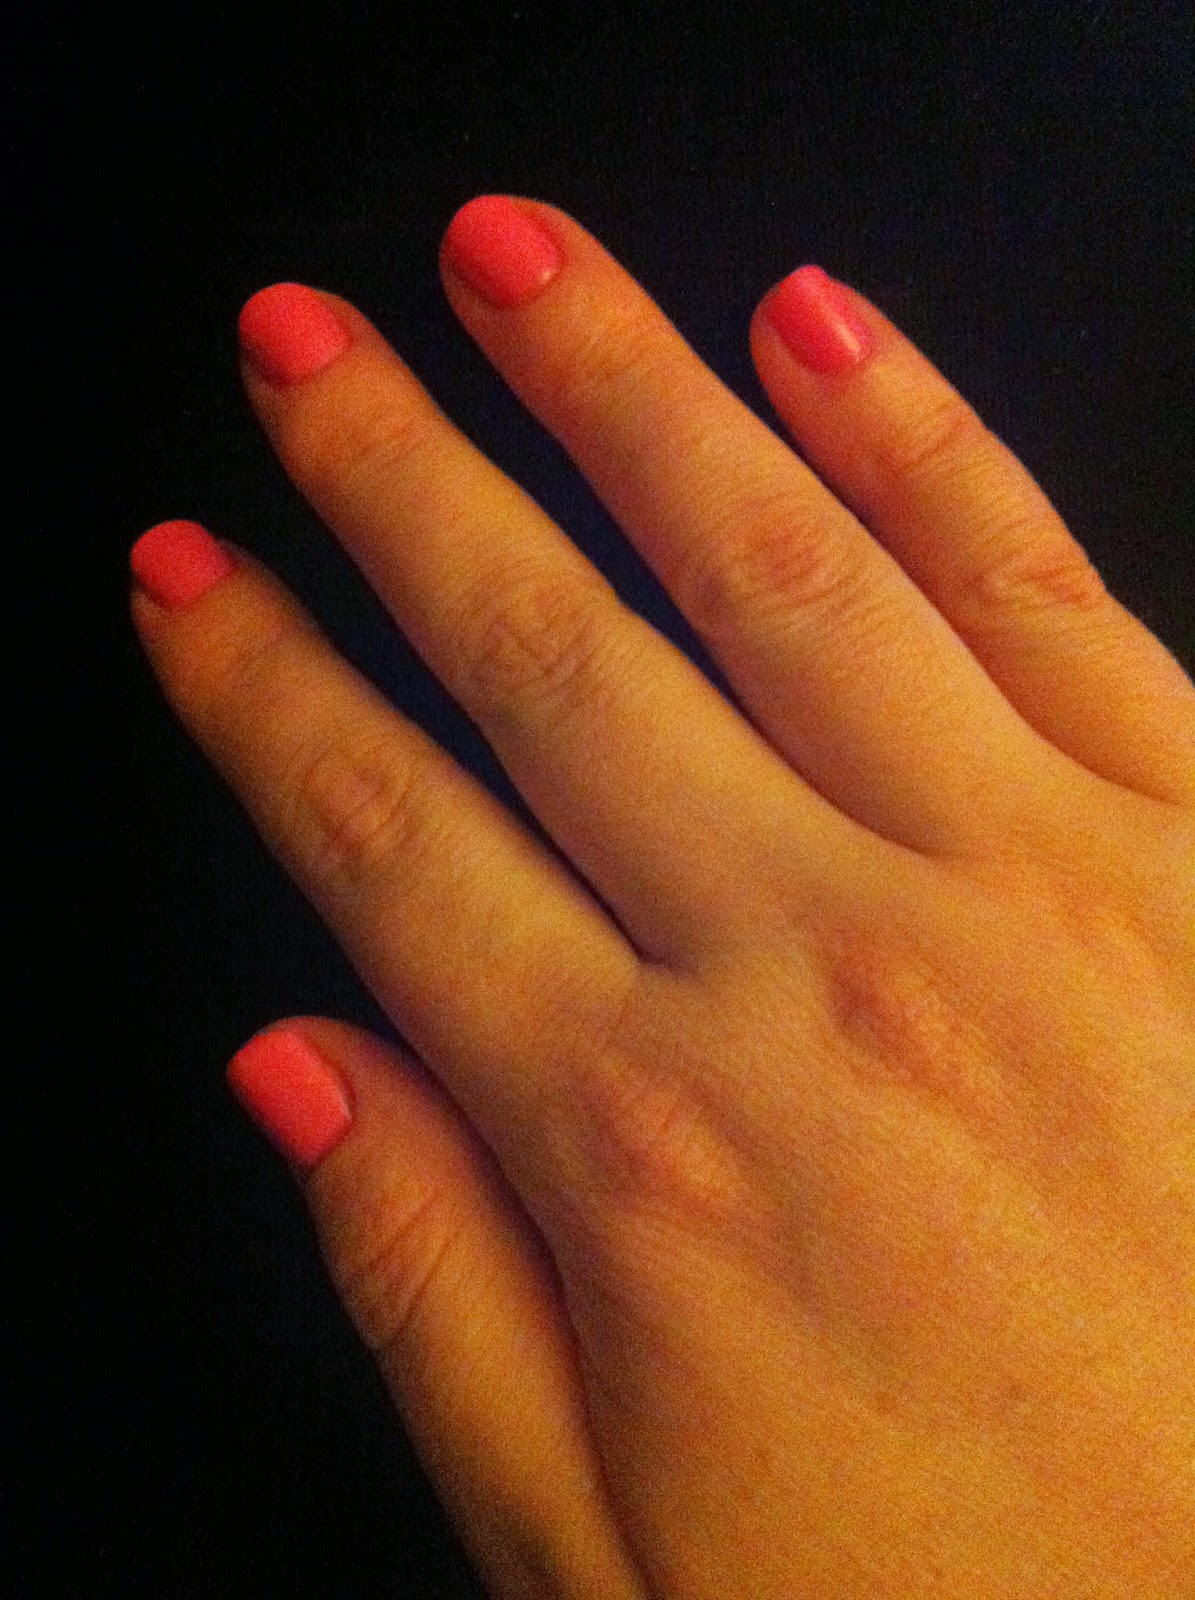 Easy Goodness: A Perfect Gel Manicure at Home!